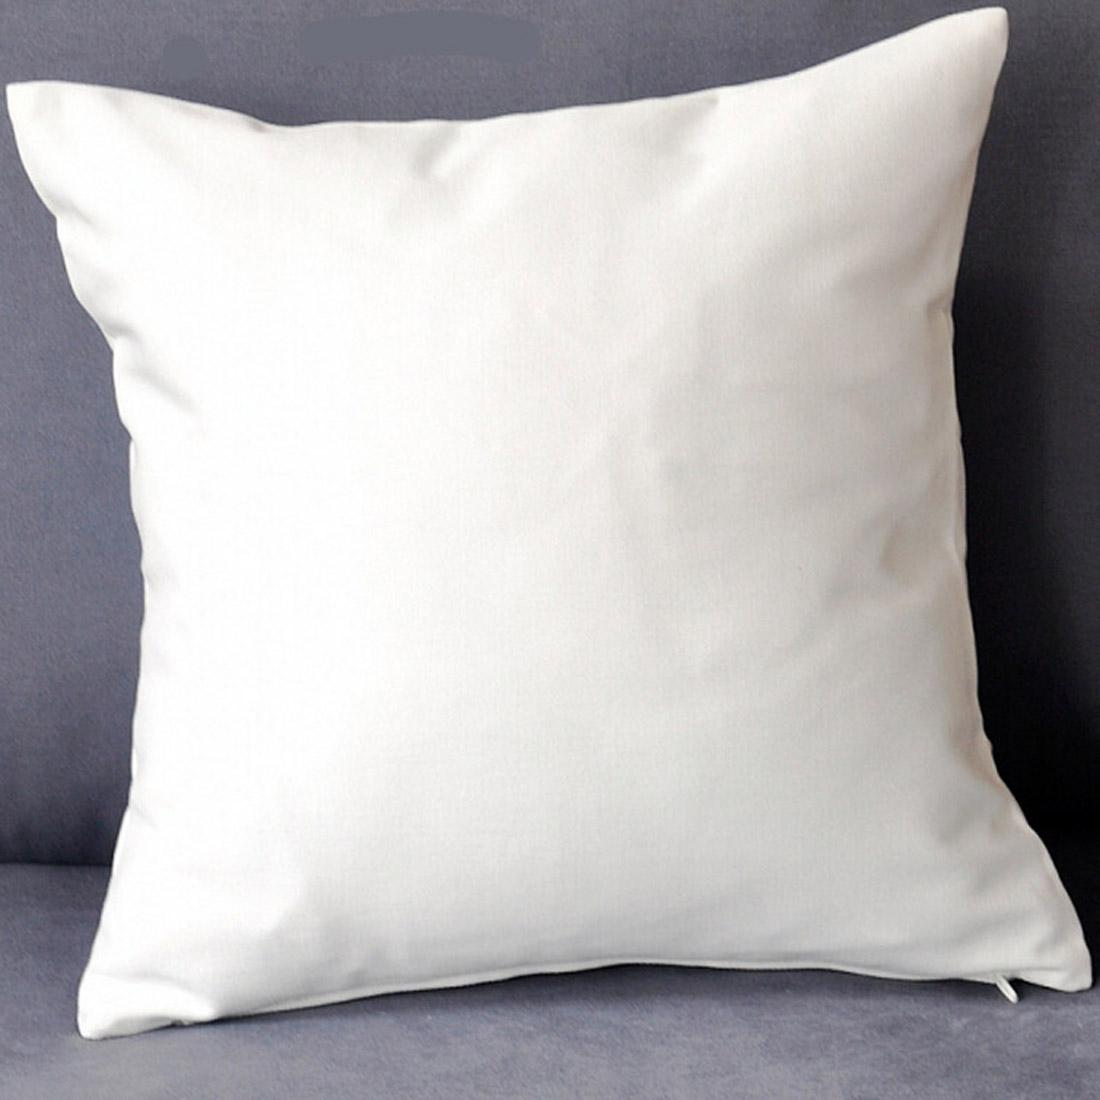 Shop for white cotton cushion covers online at Target. Free shipping on purchases over $35 and save 5% every day with your Target REDcard.